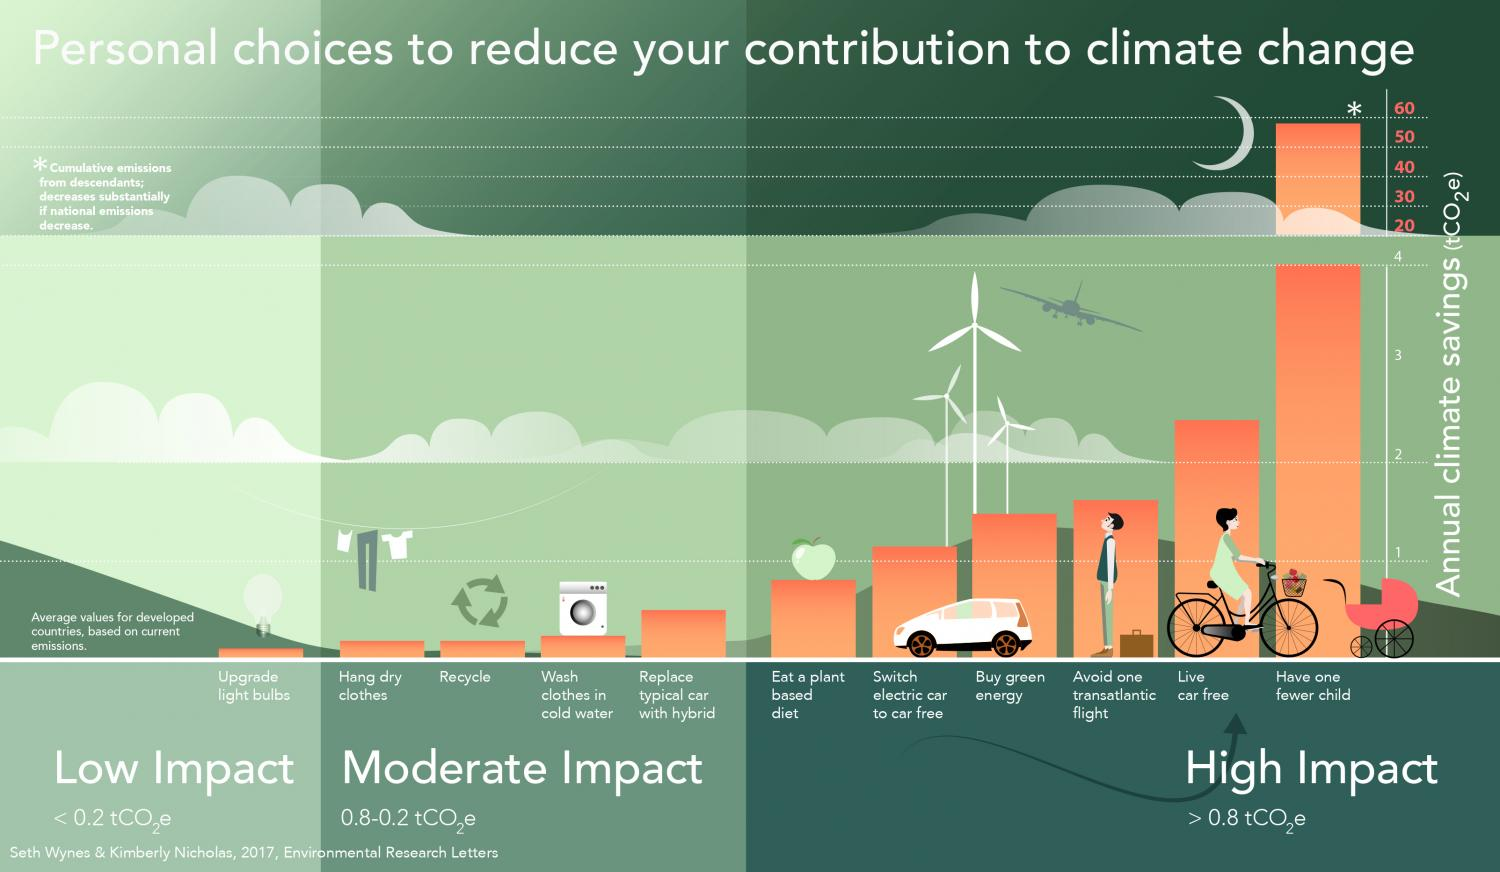 Car Free Living Better For Combatting Climate Change Than